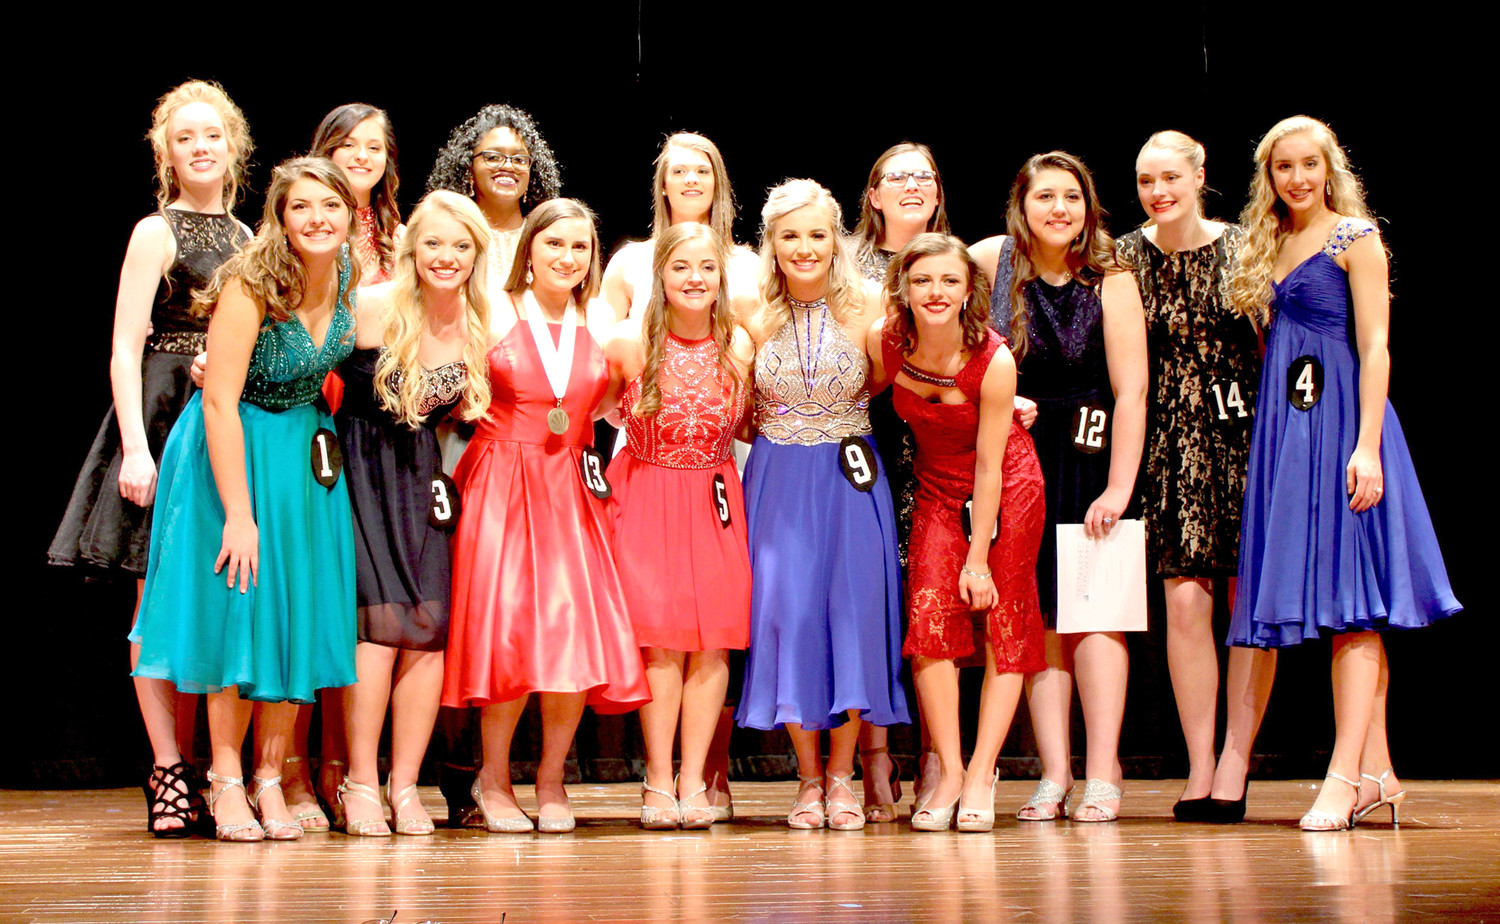 THE 14 GIRLS who vied for the title of Distinguished Young Woman of Cleveland for 2019 gather for a photo after the recent competition.